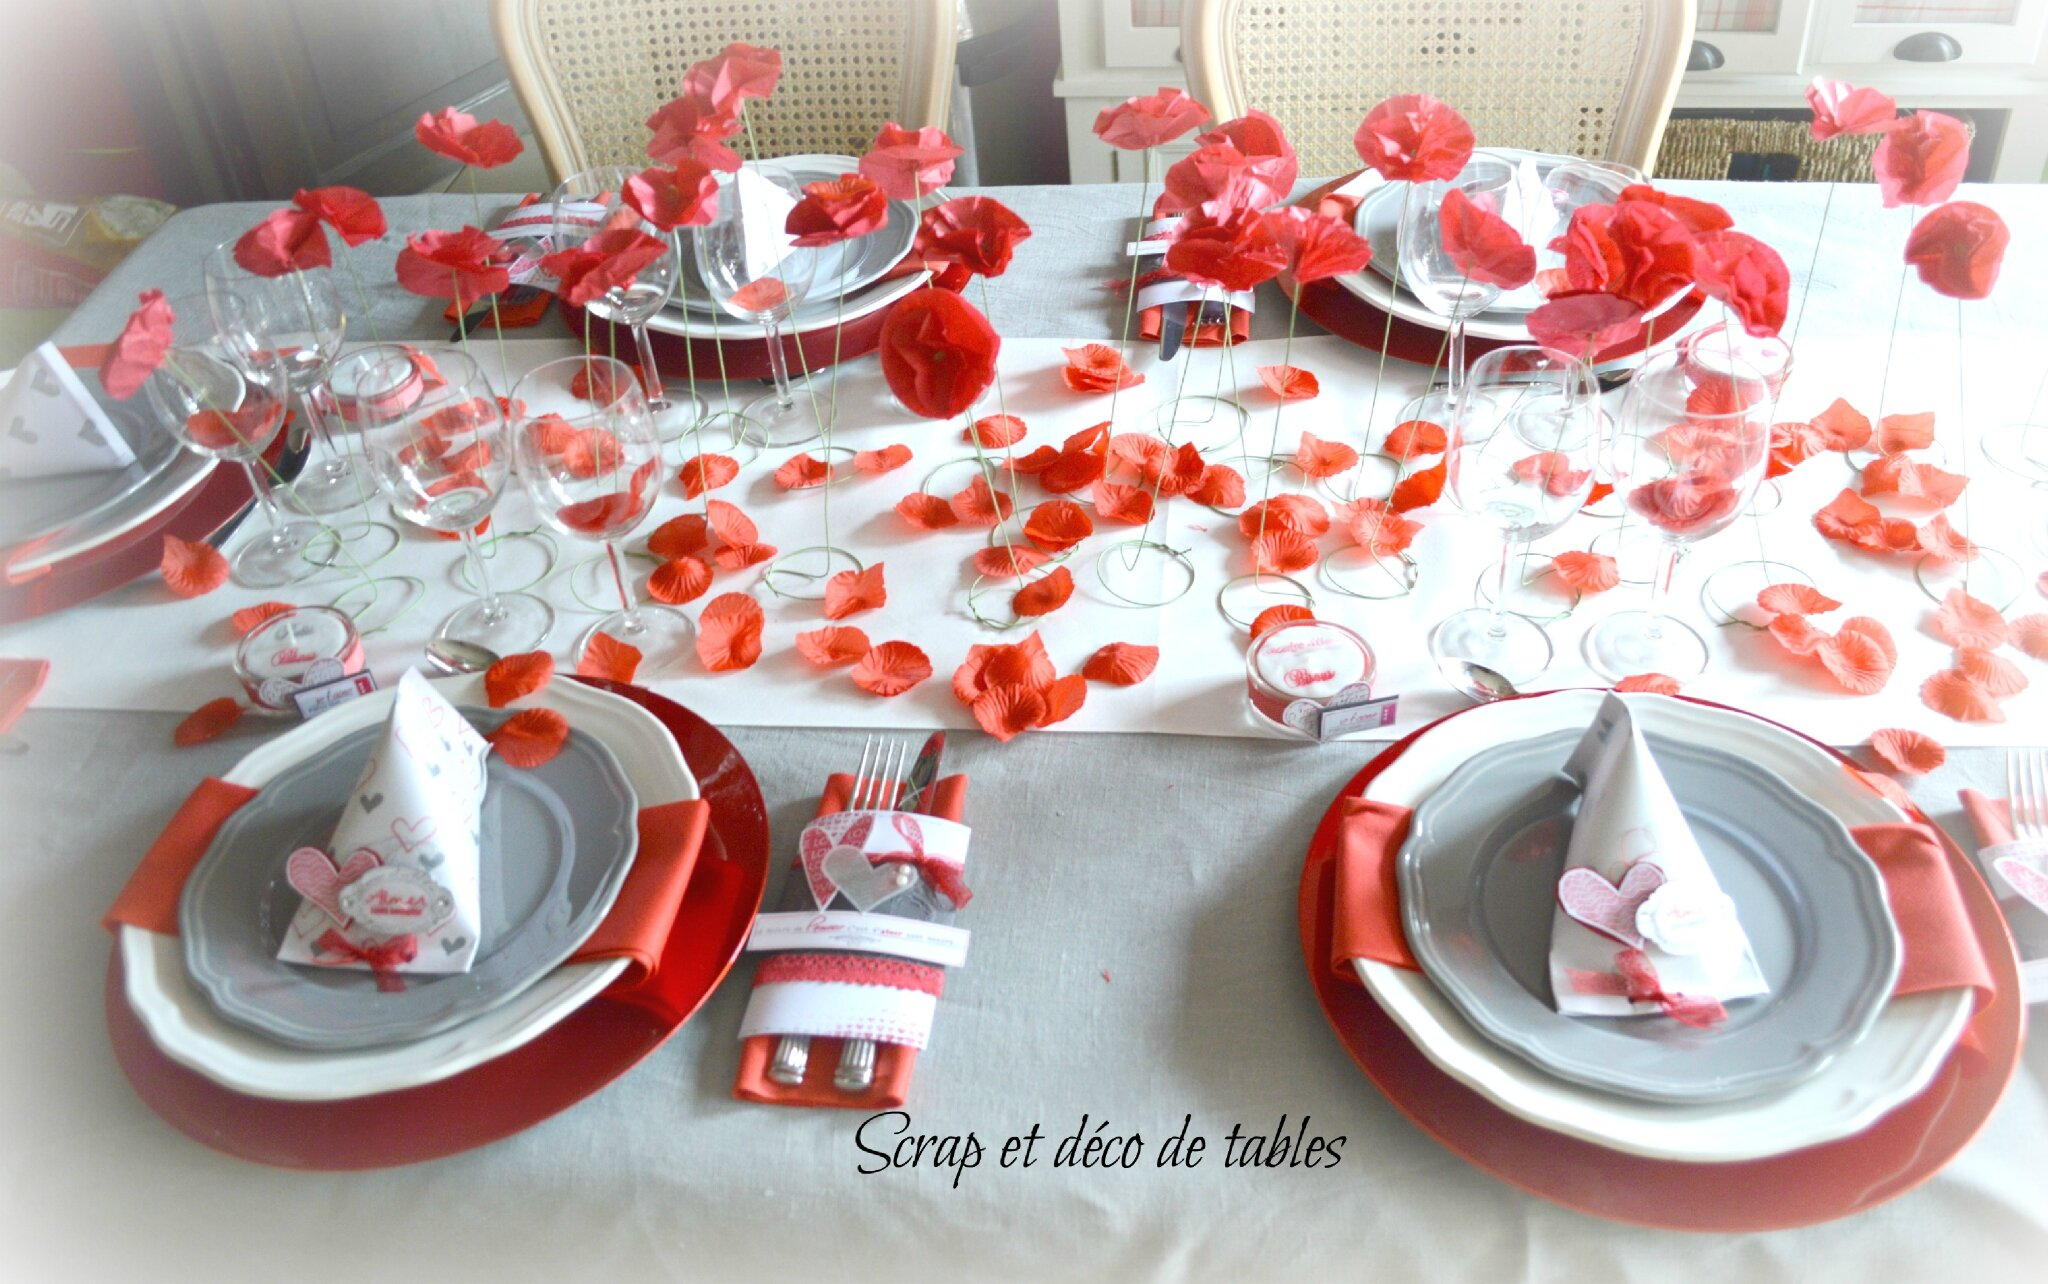 Table Saint Valentin à deco de table saint-valentin 2015 - scrap et déco de tables